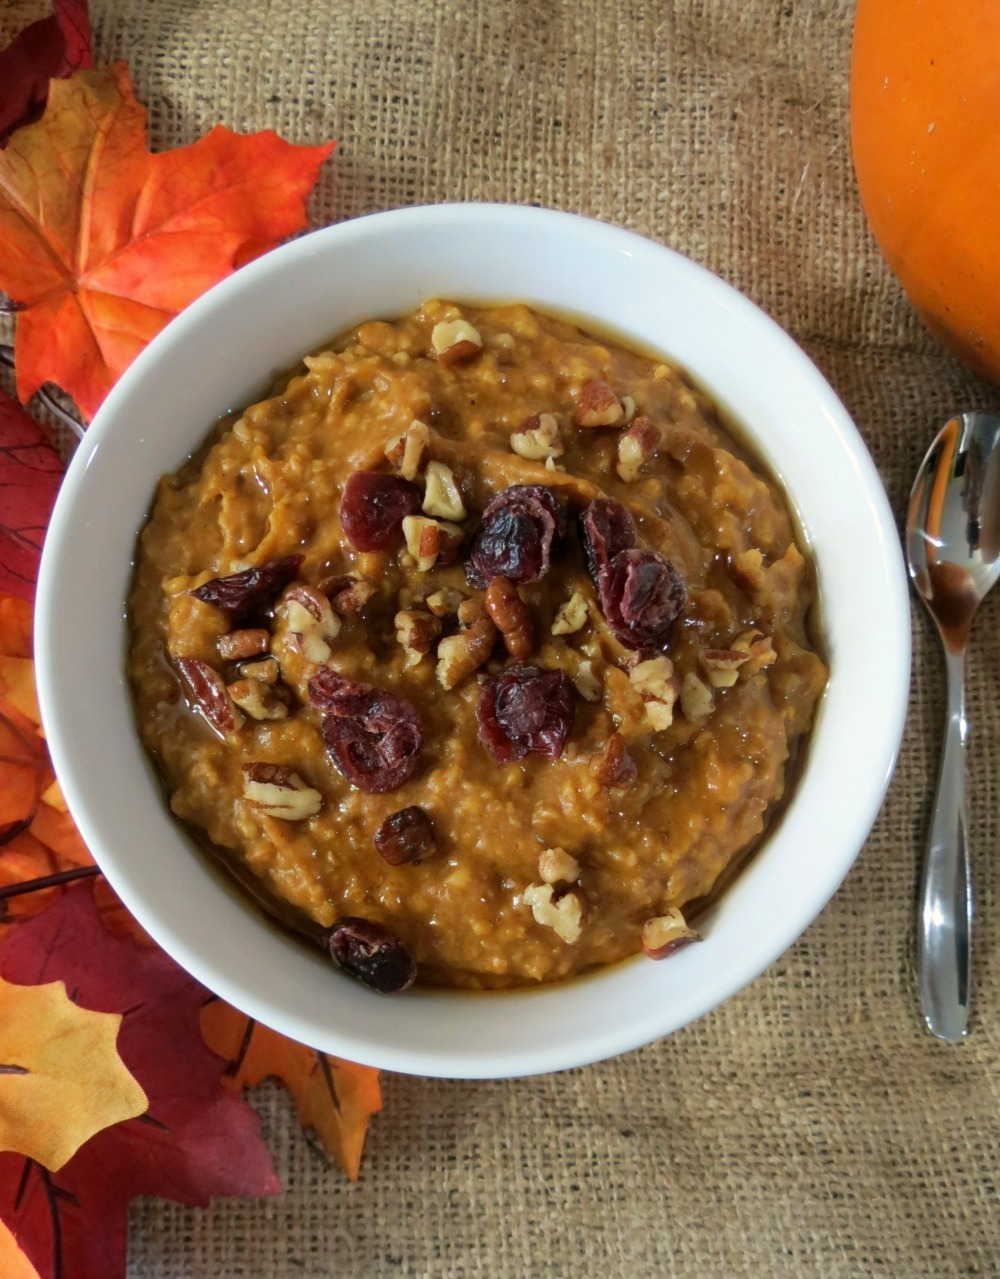 ... pumpkin oatmeal in a crockpot have you ever made oatmeal in a crockpot